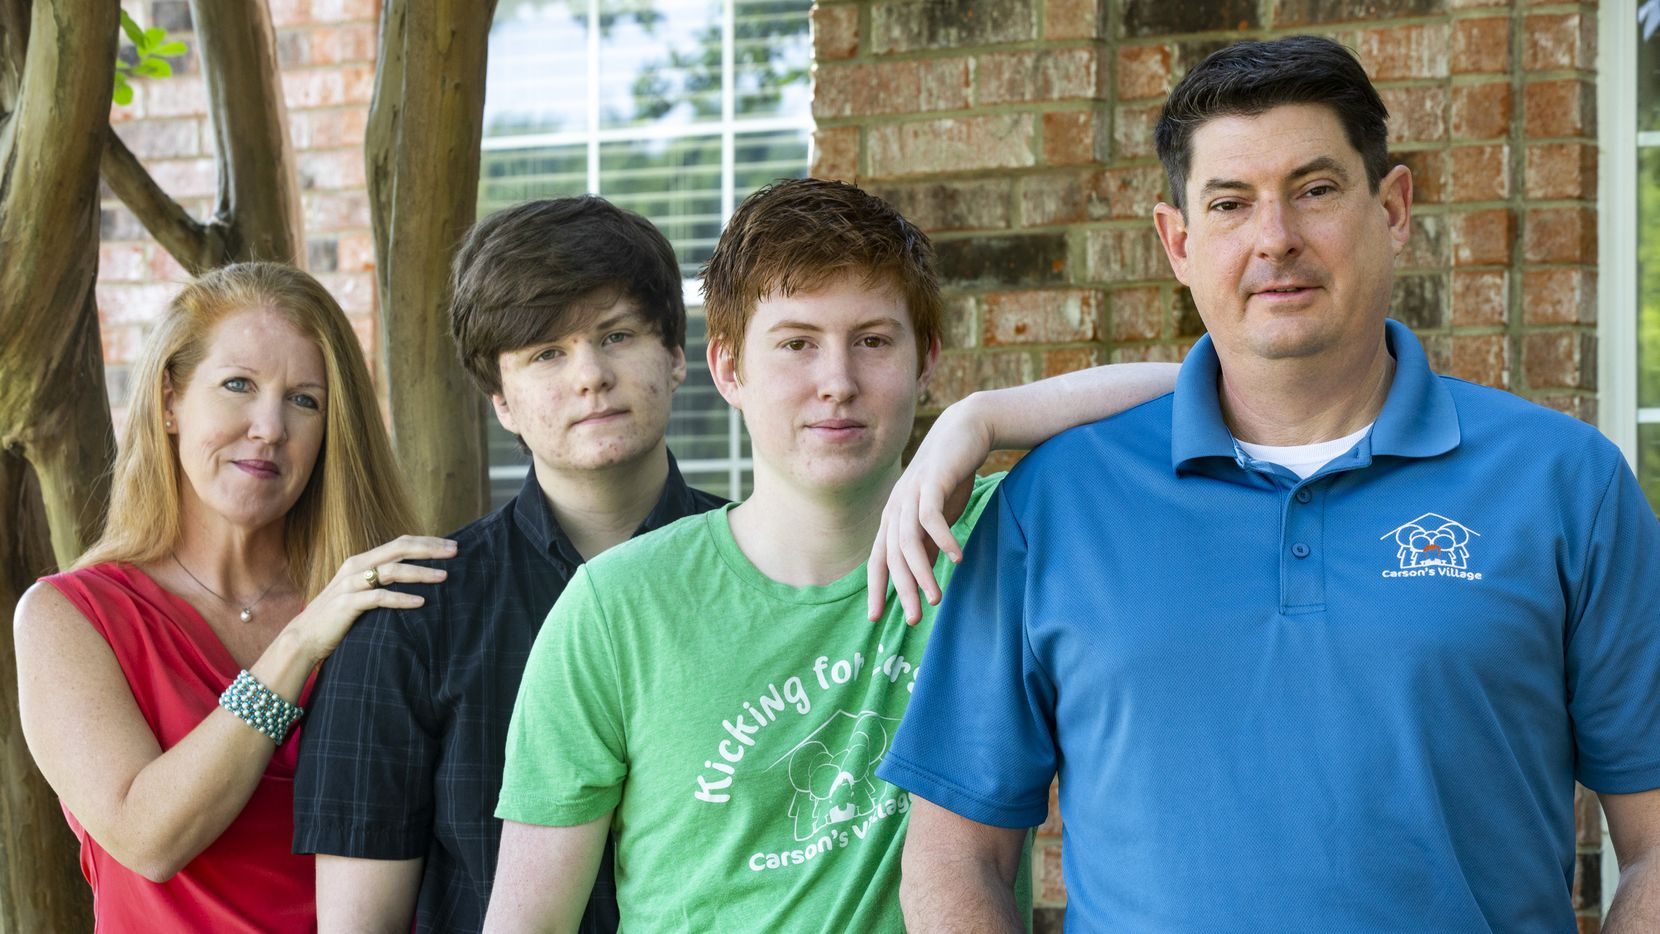 Jason Dyke and wife April at their Coppell home with their sons Ryan (left), a 16-year-old high school junior, and Alex, an 18-year-old senior. Their third son, 11-year-old Carson, died by suicide on April 28, 2017.